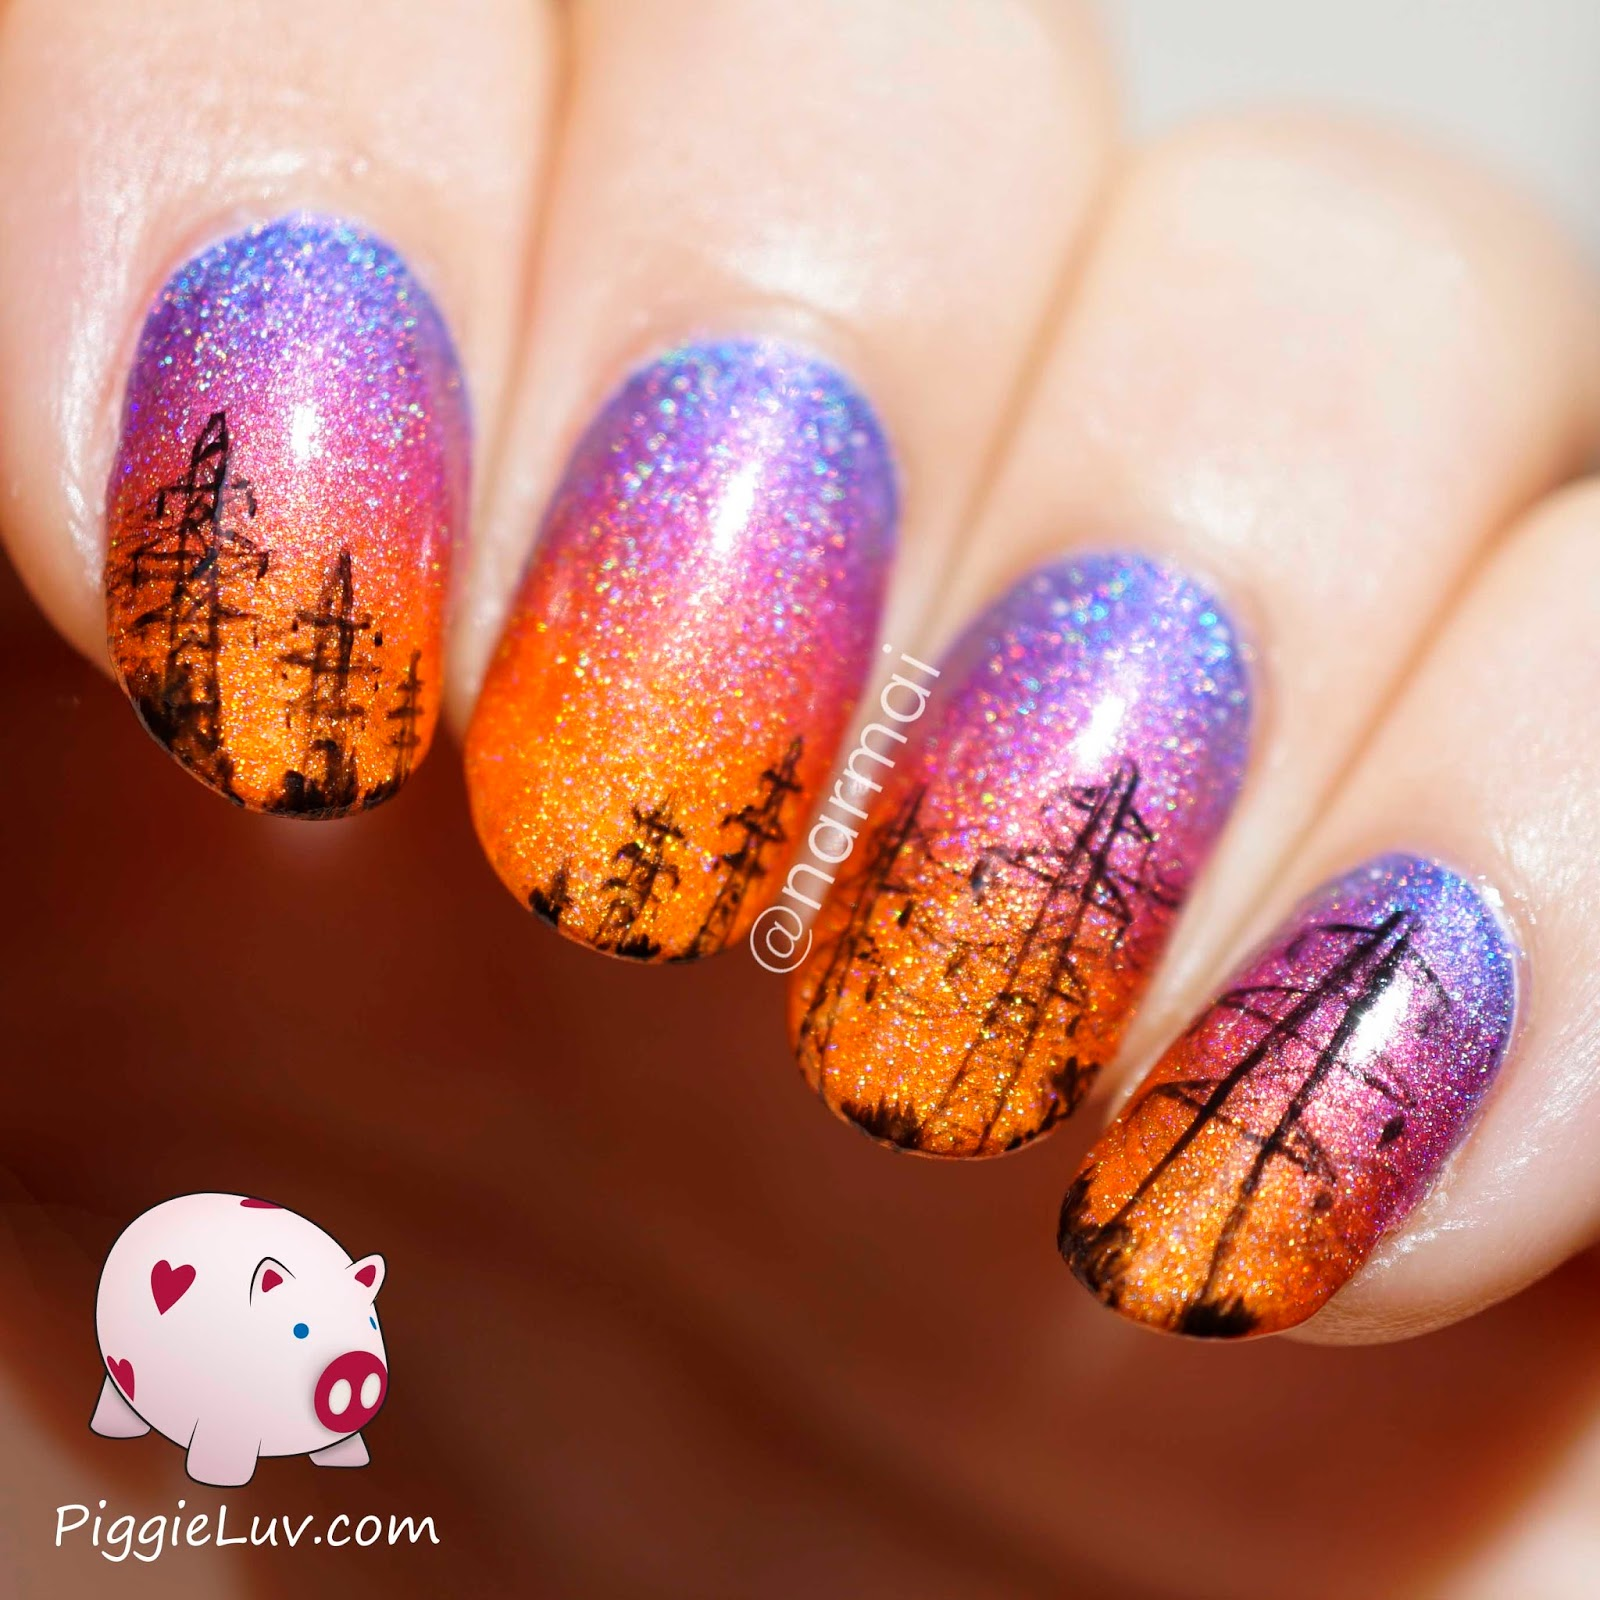 One Line Nail Art : Piggieluv high voltage power lines nail art